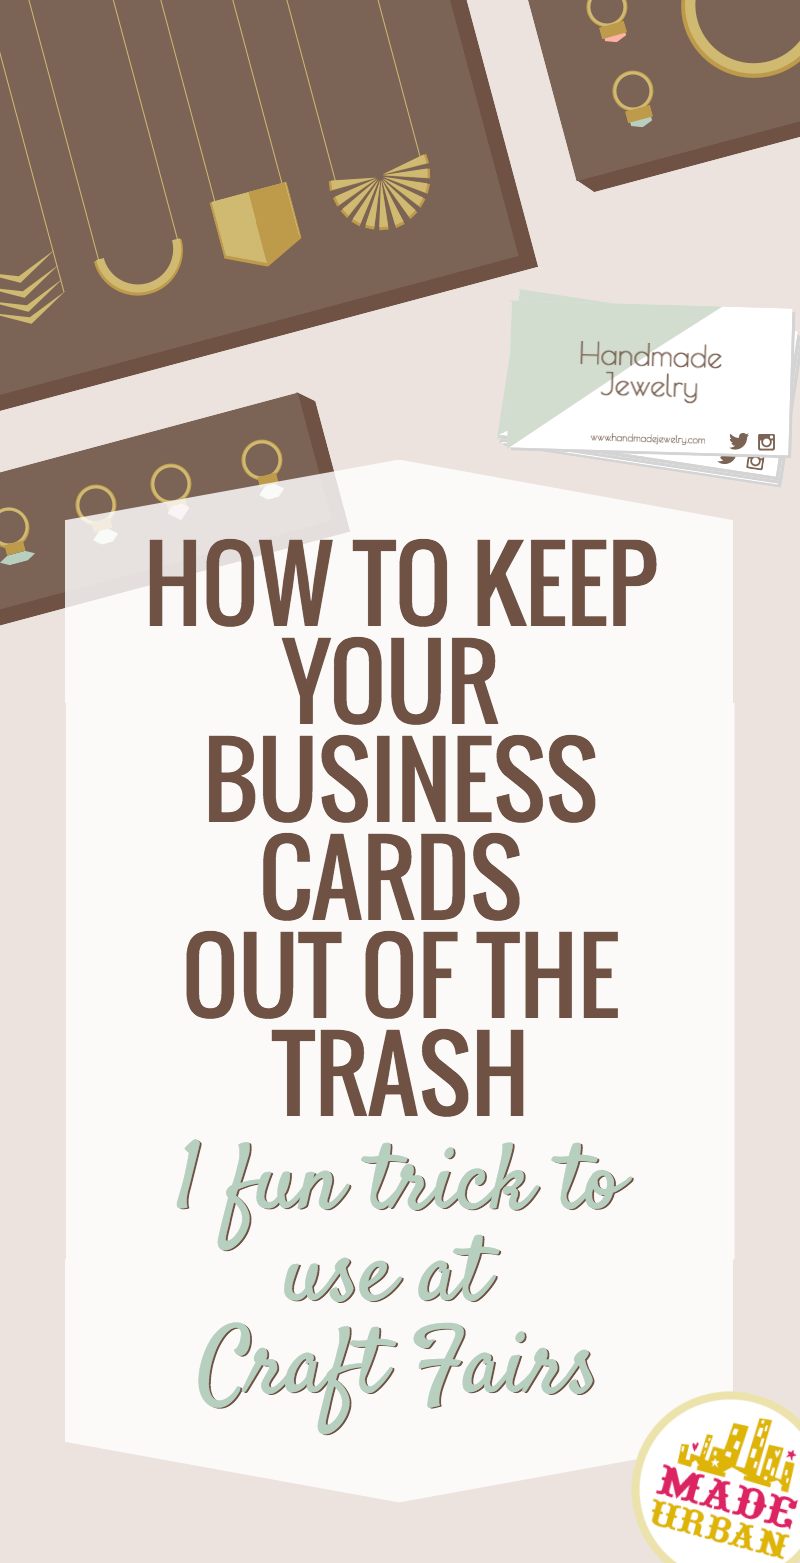 How to Keep your Business Card Out of the Trash | Craft fairs ...